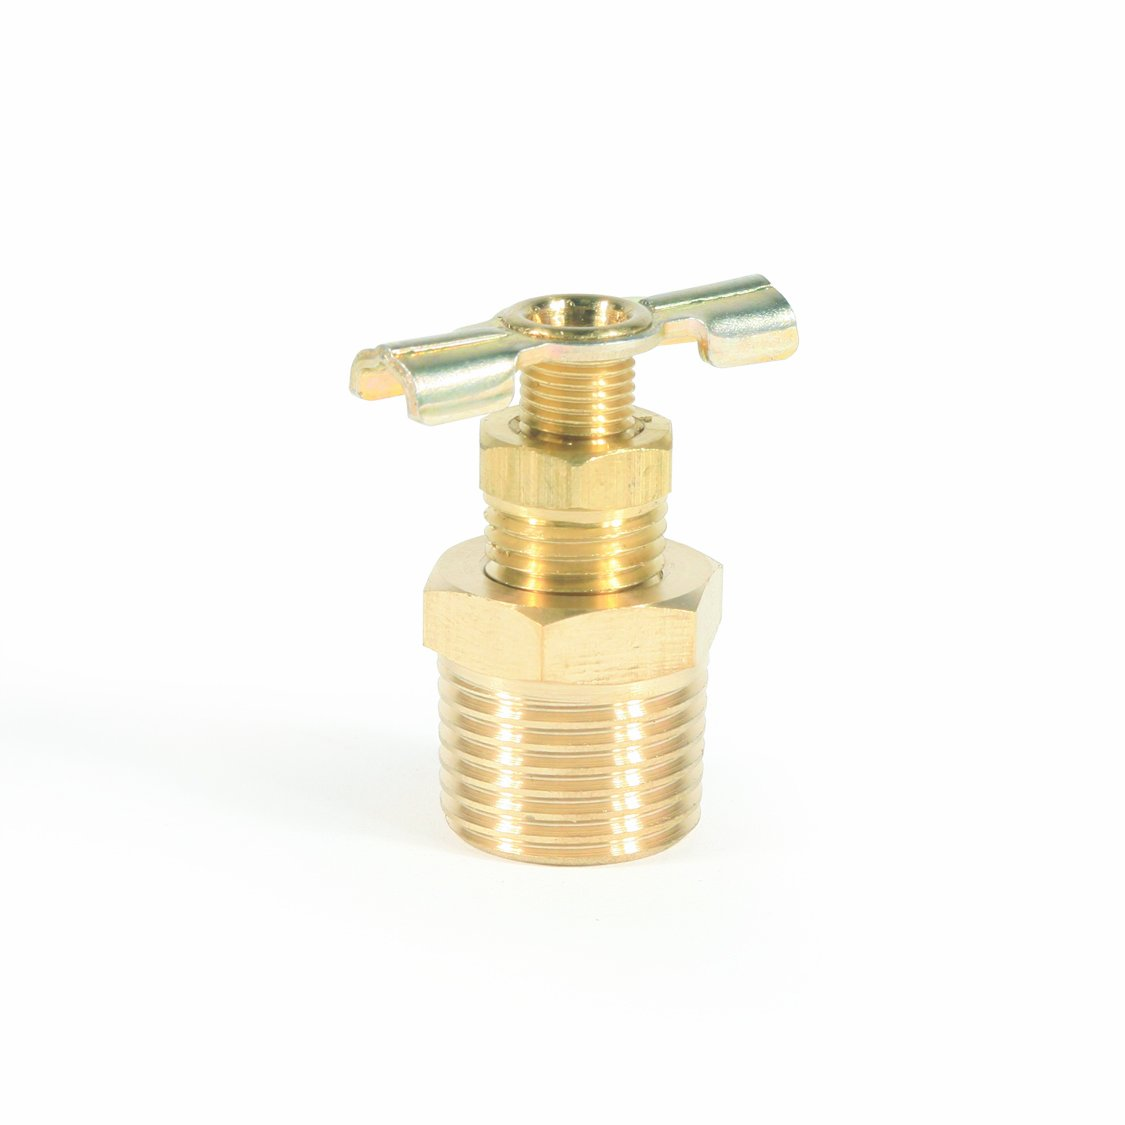 "Camco 11703 1/2"" Water Heater Drain Valve"